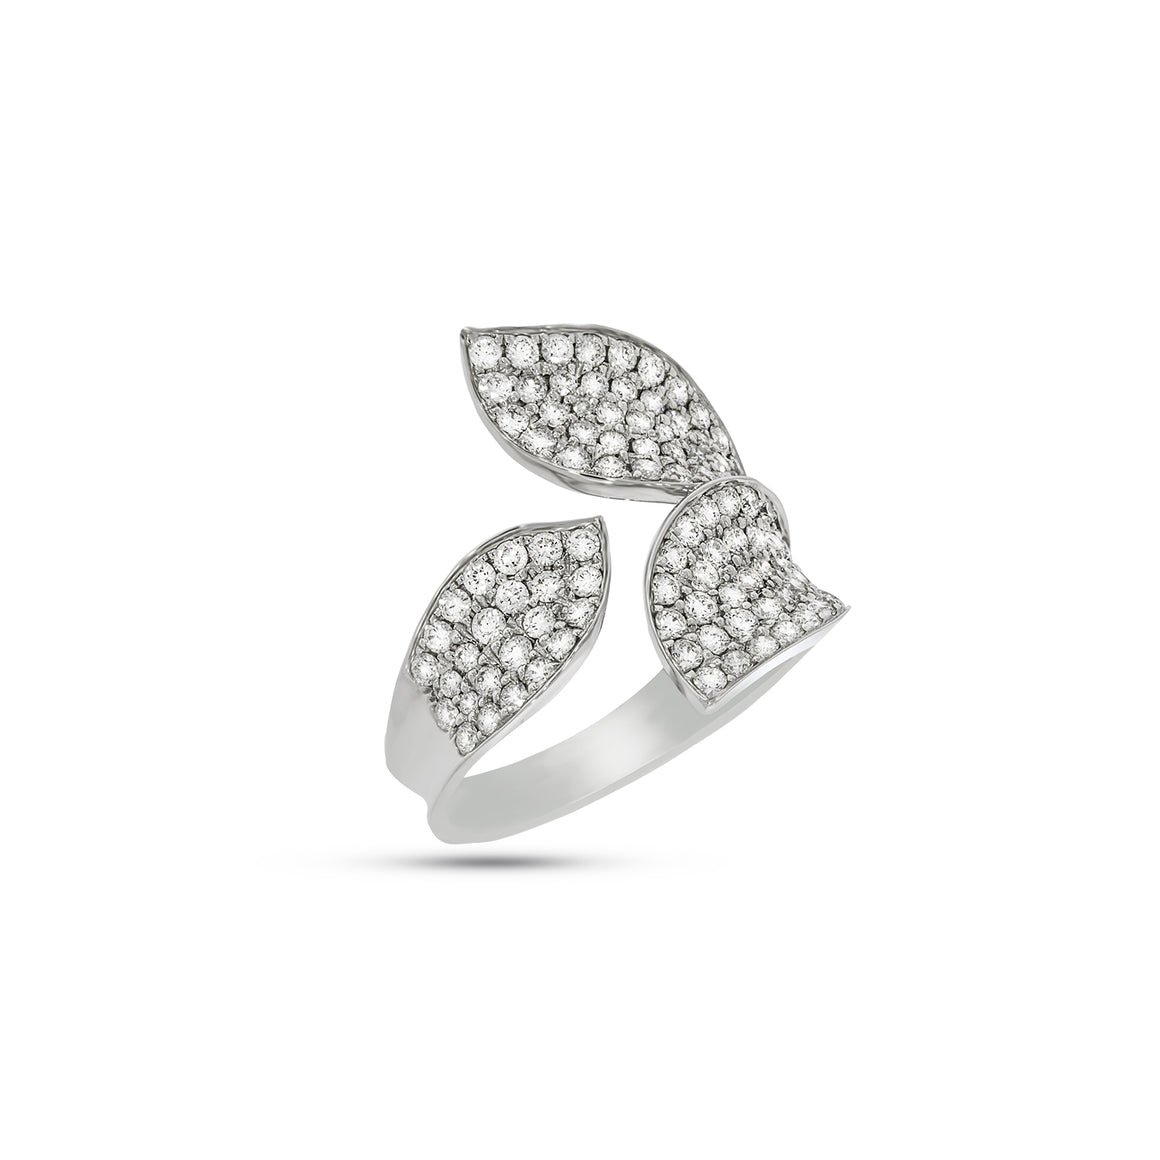 Leaf diamonds Ring, marvelously set with 1.38 ct. 109 round diamonds in 18K white gold. Engagement Rings / wedding ring.